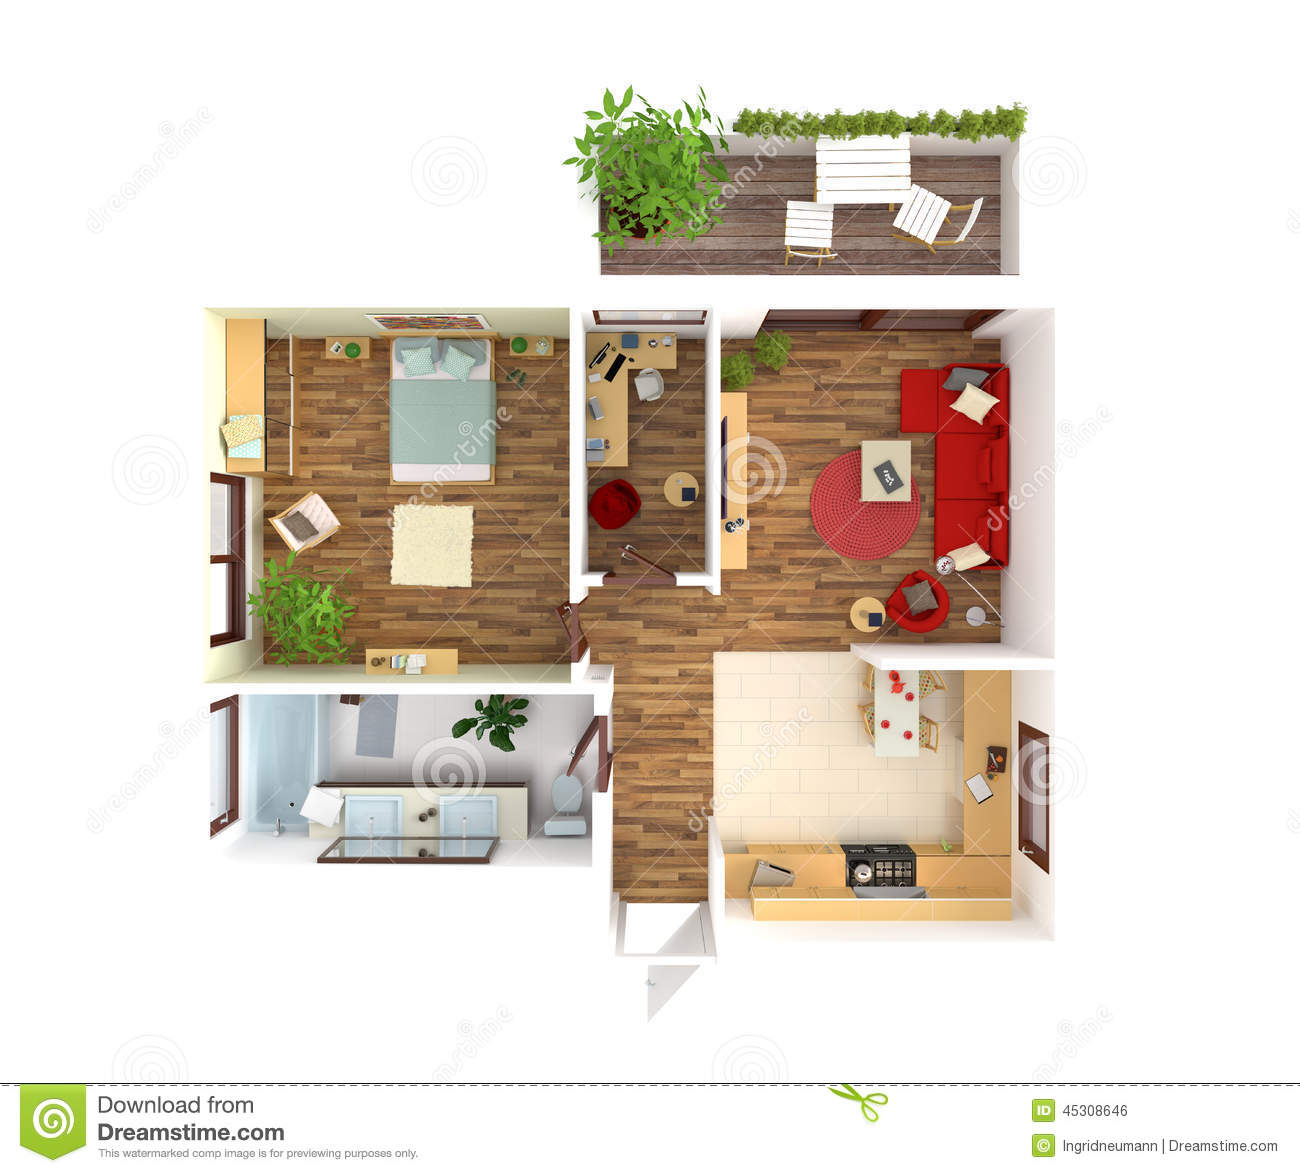 Quiet Corner floorplan 2